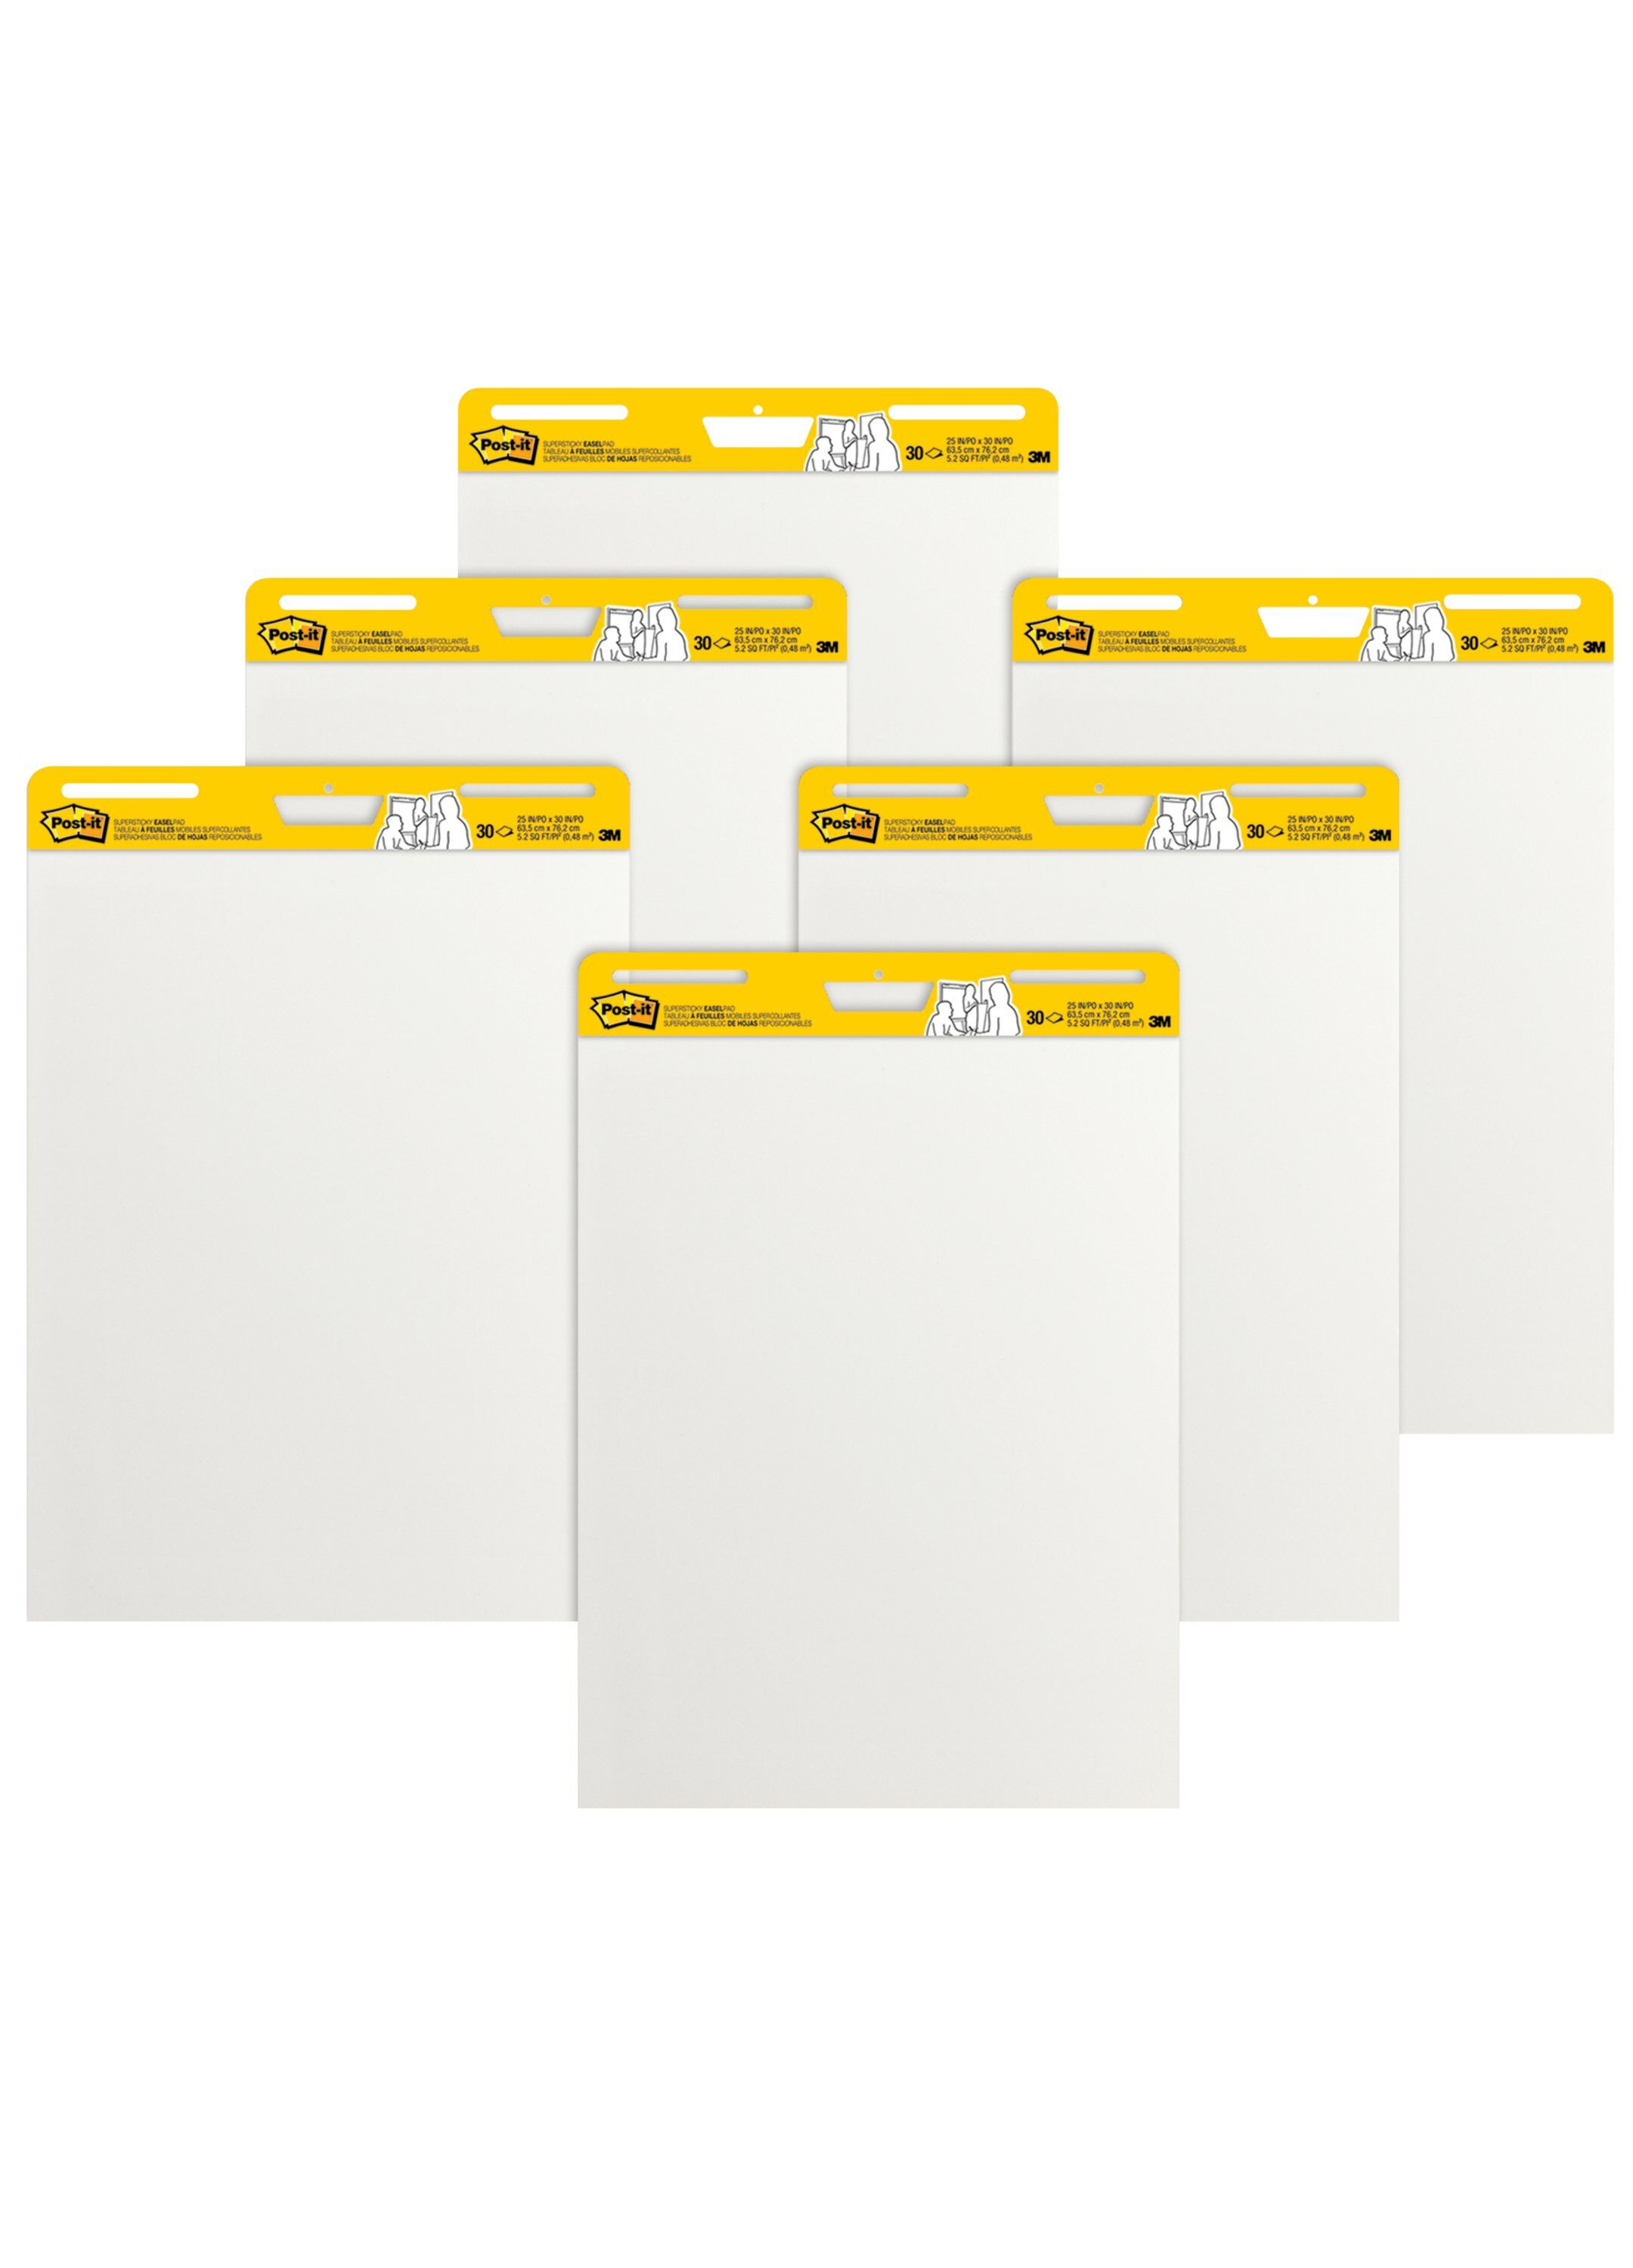 8 Pack of Premium Self Stick Flip Chart Paper Giant Wall Post Notes Class Captain Sticky Easel Pad 25x30 Inches 25 Sheets//Pad White Large Chart Paper for Teachers Meeting Presentation Paper Pad